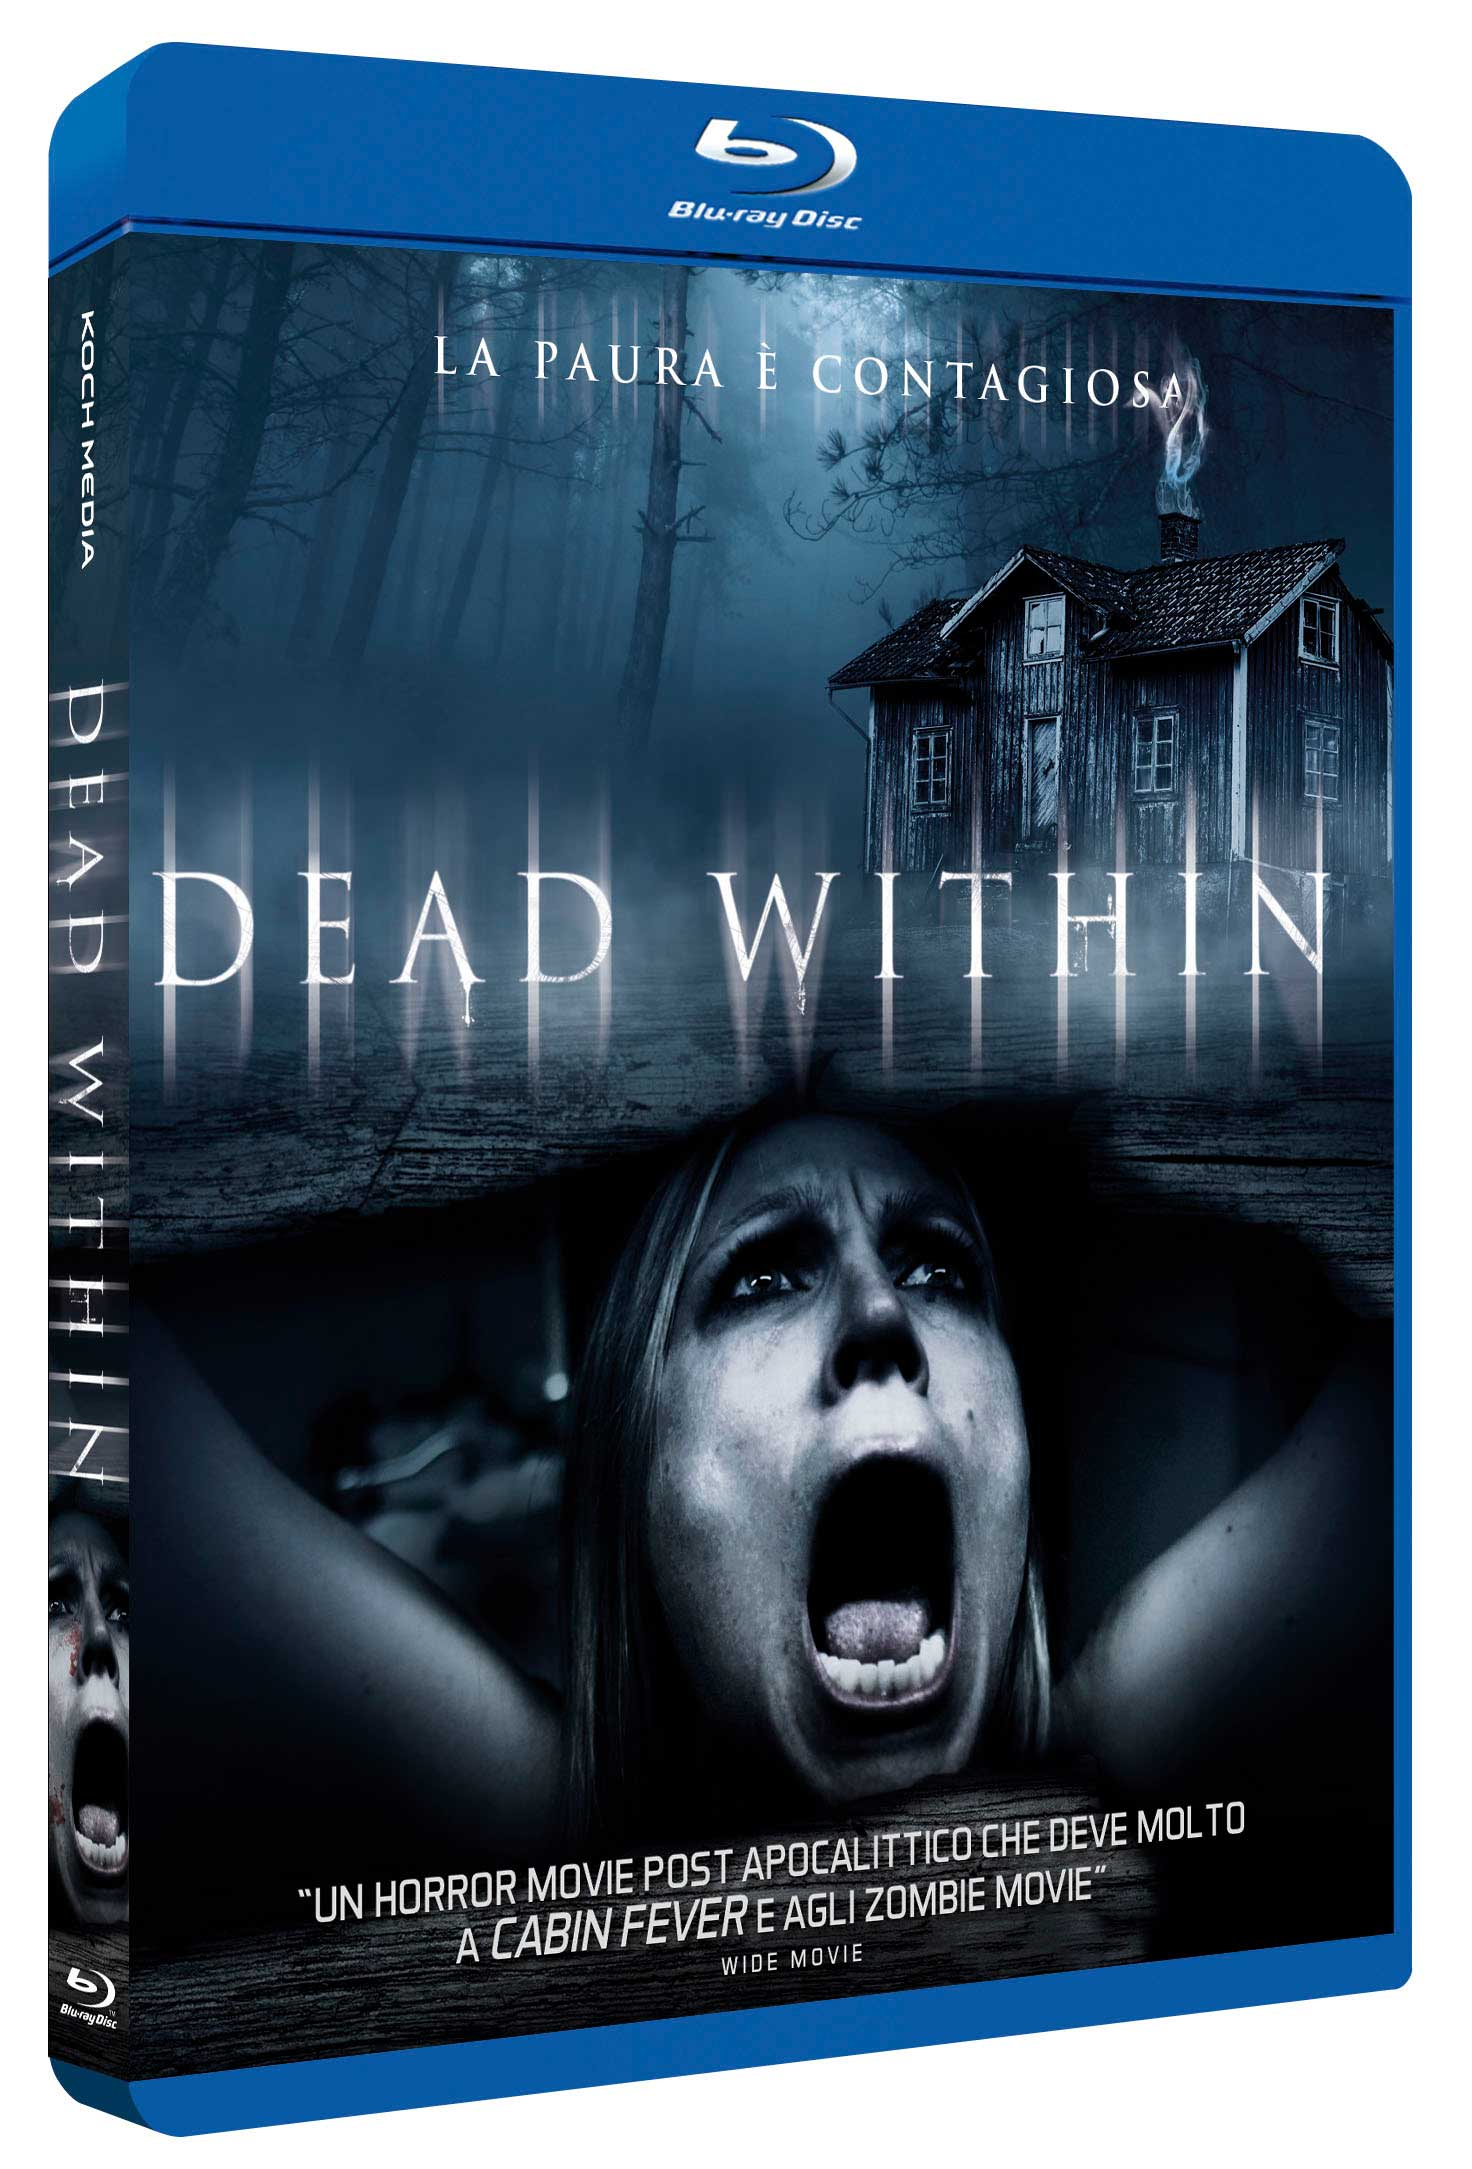 DEAD WITHIN - BLU RAY